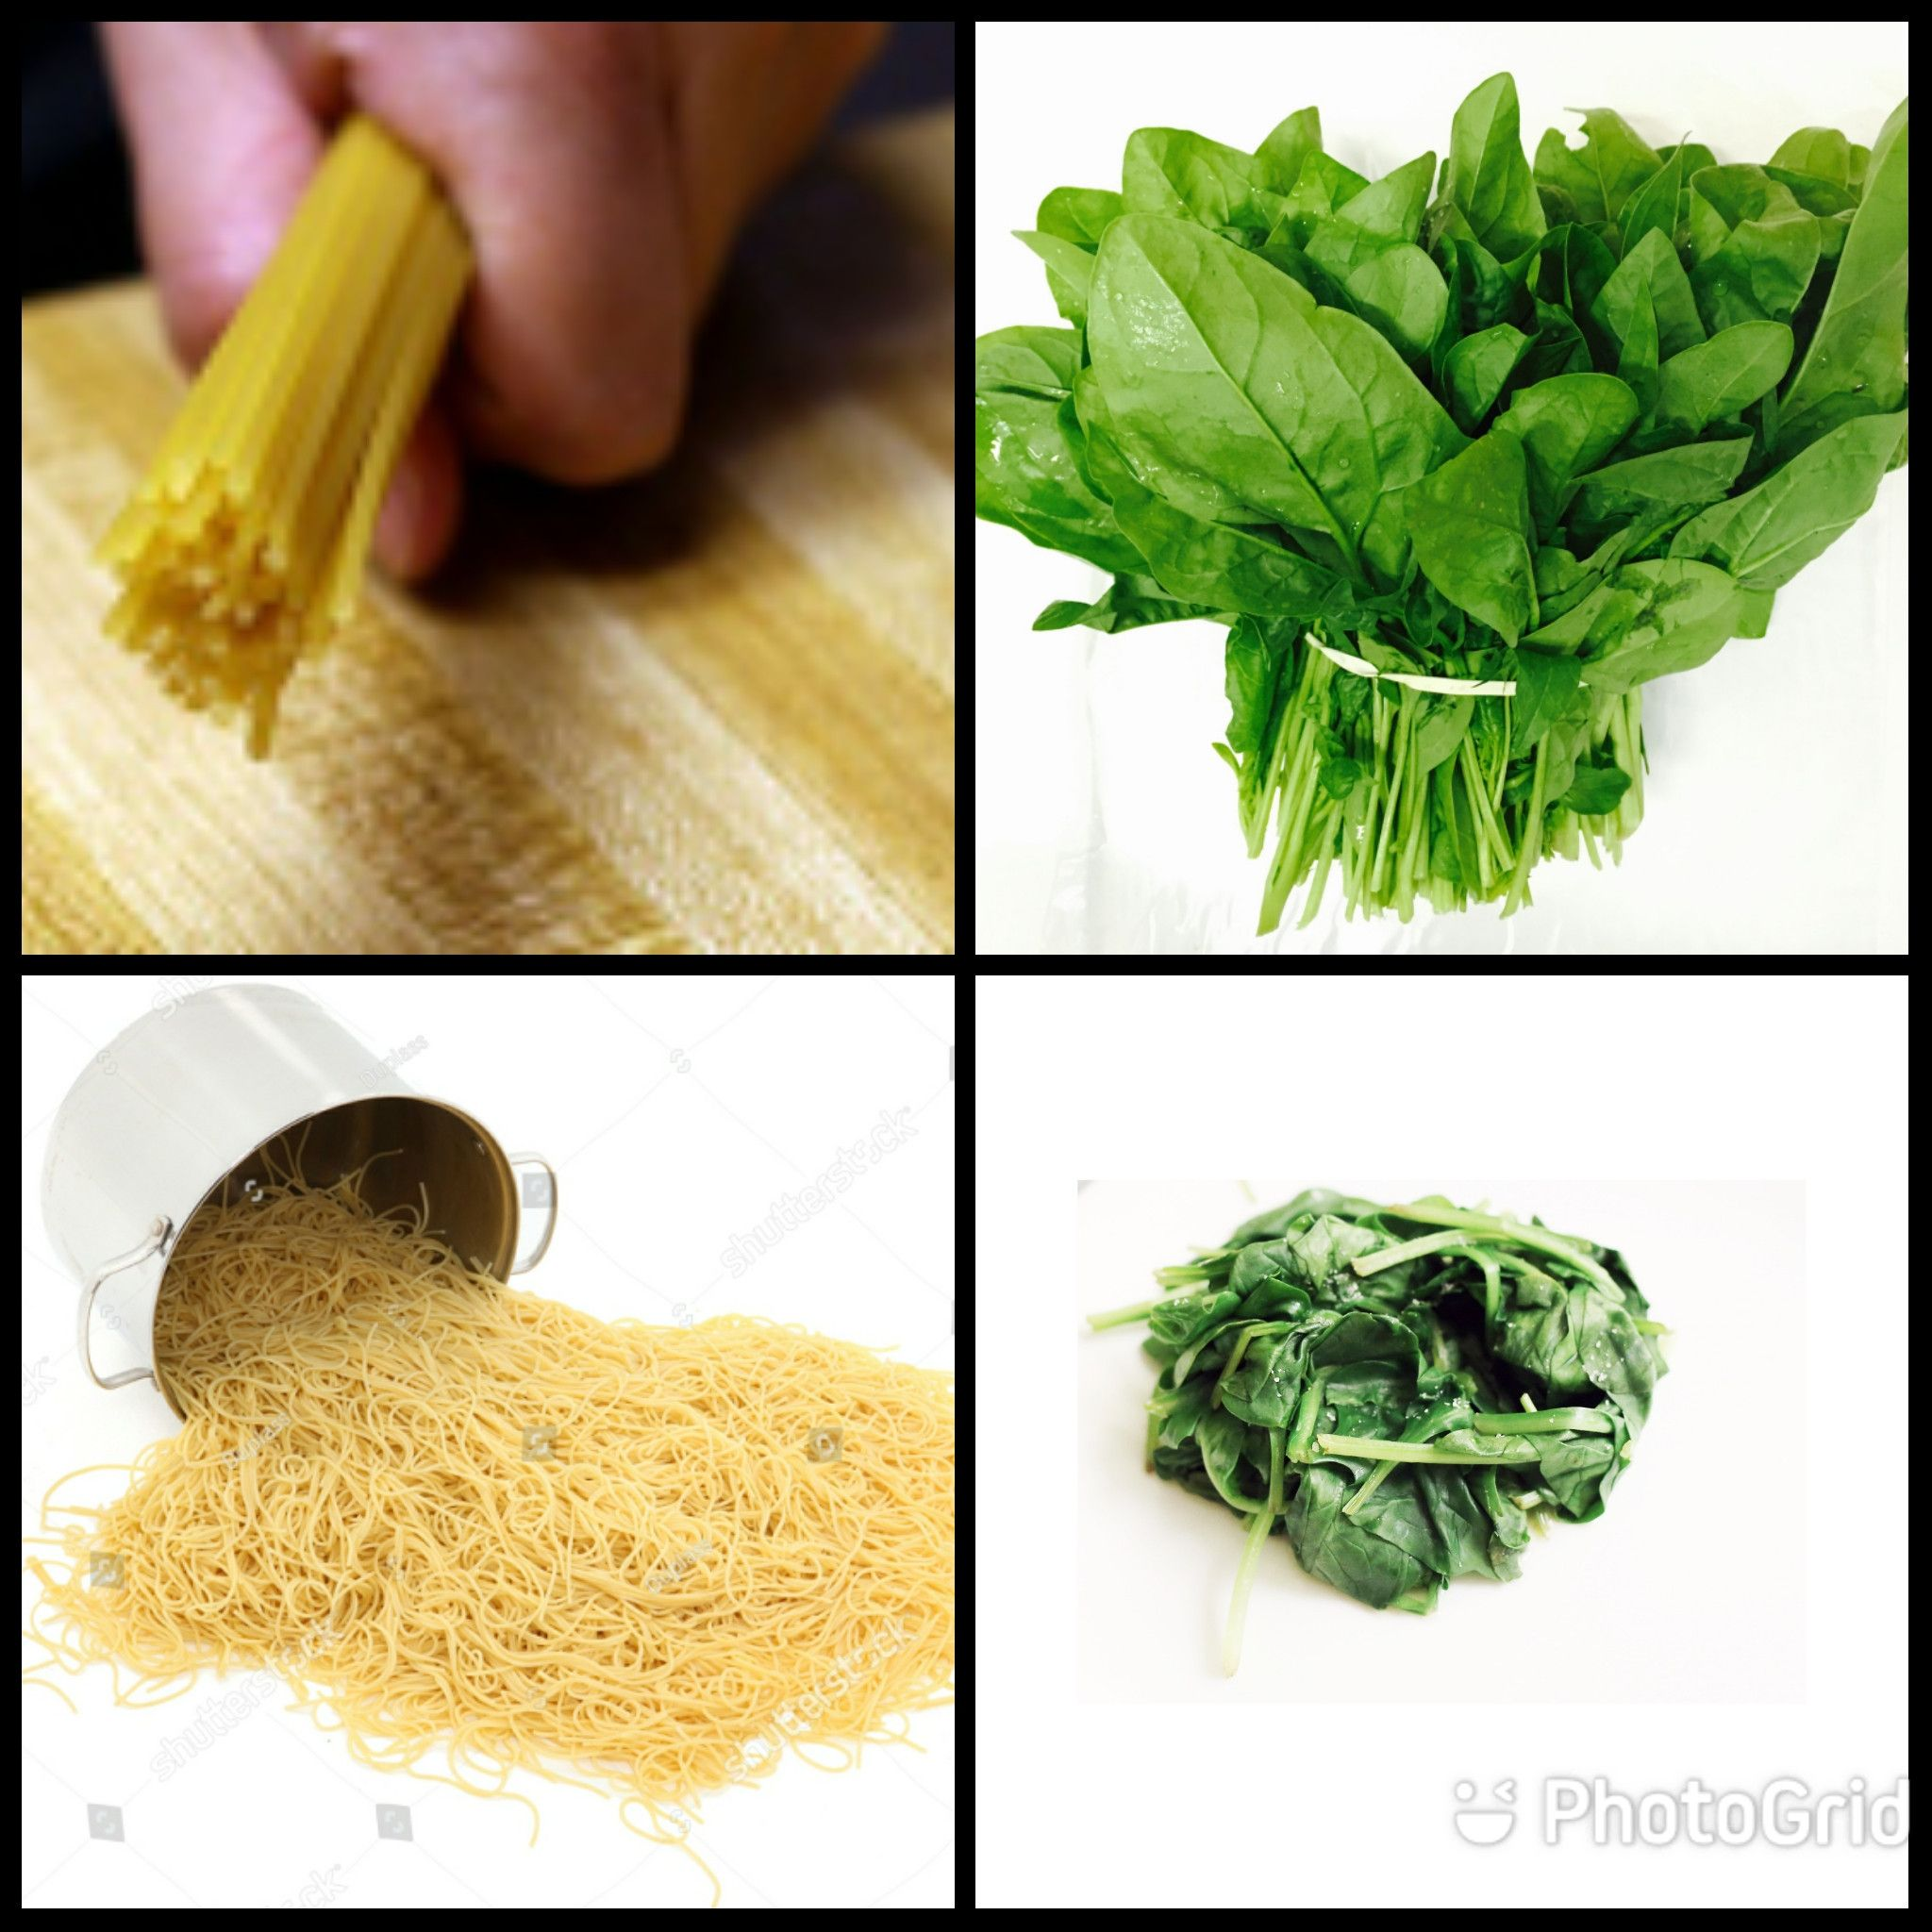 The pasta/spinach paradox